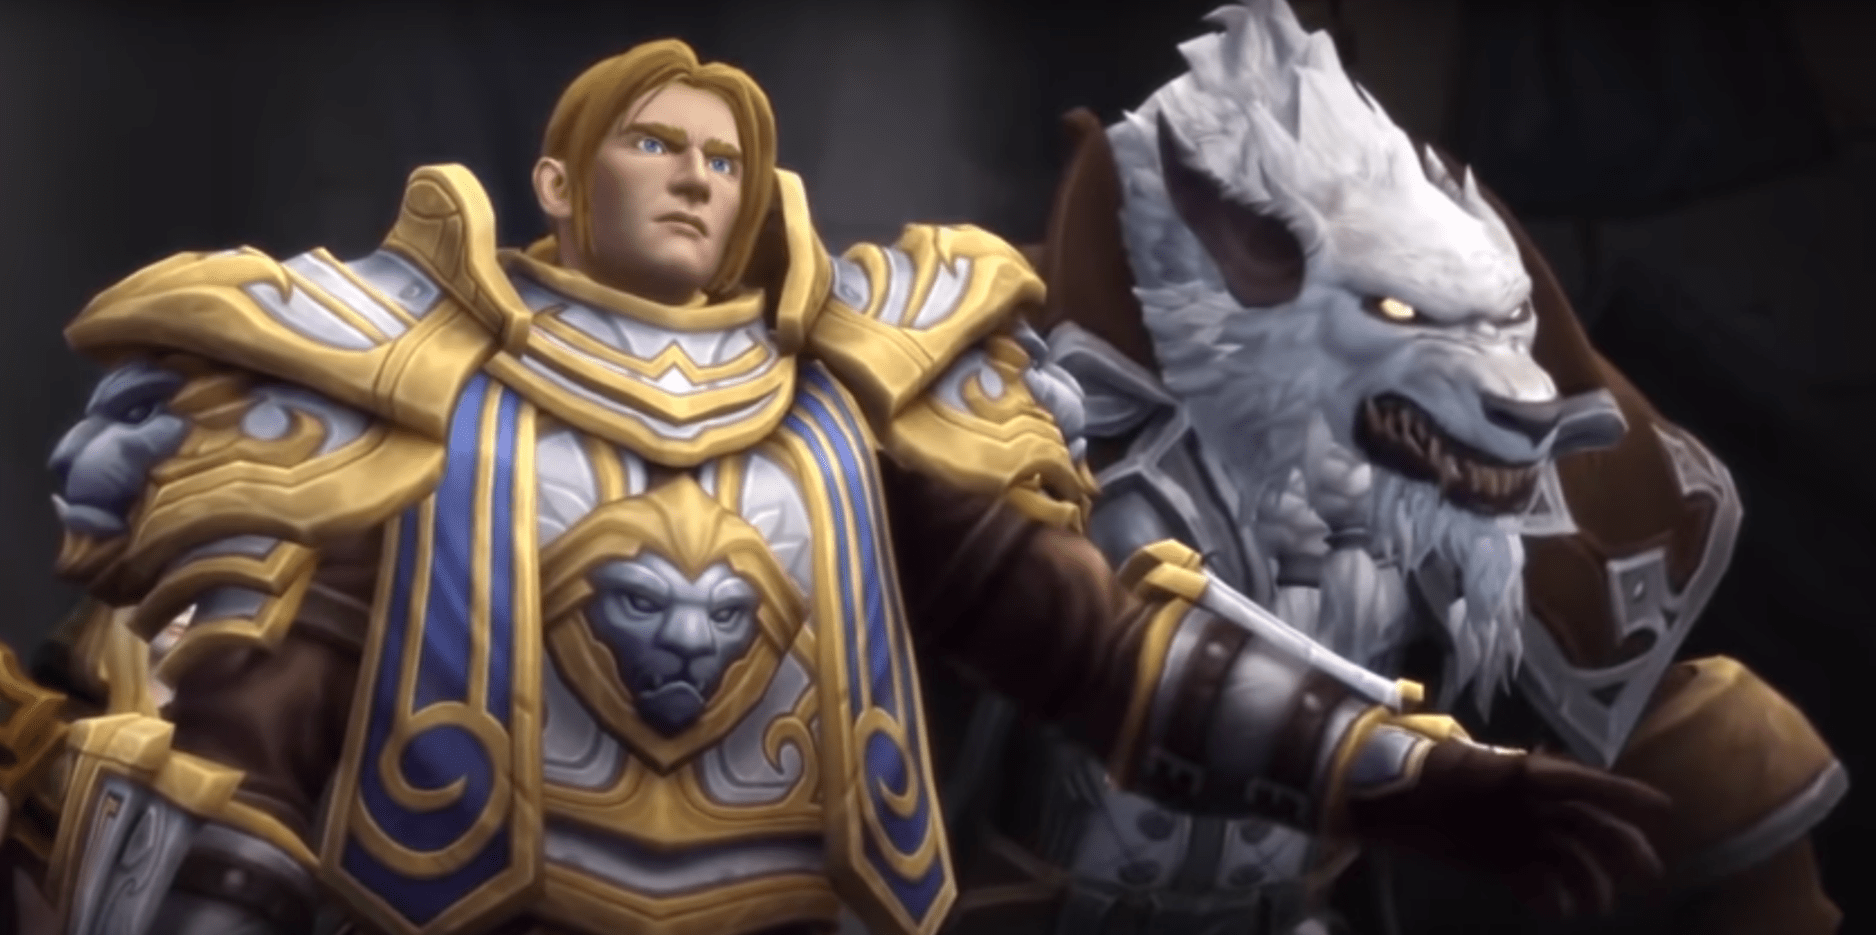 World Of Warcraft Game Director Ion Hazzikostas Discusses Alts And Responding To Player Base Feedback For Shadowlands